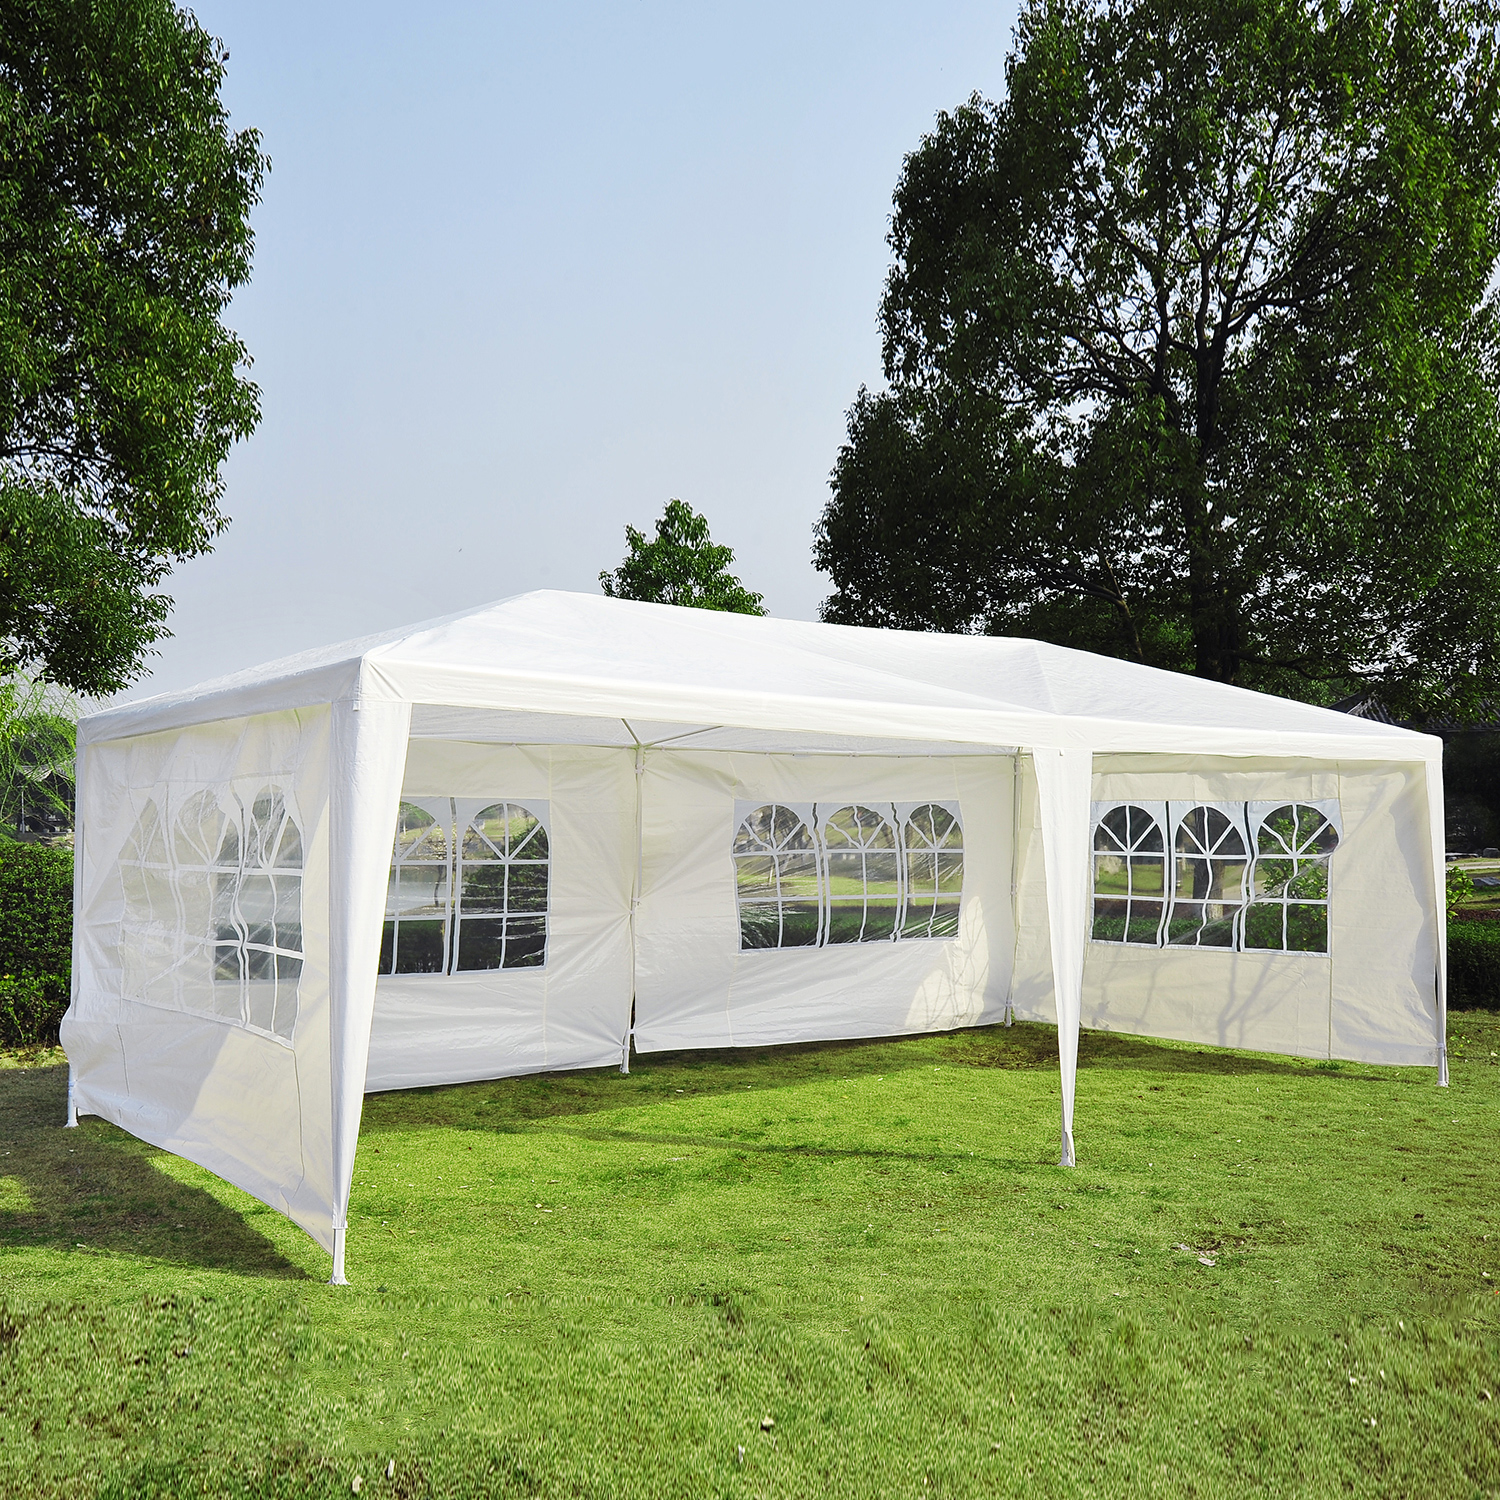 Details about Outsunny 10'x20' Outdoor Wedding Party Tent Patio Gazebo  Canopy Side Walls White